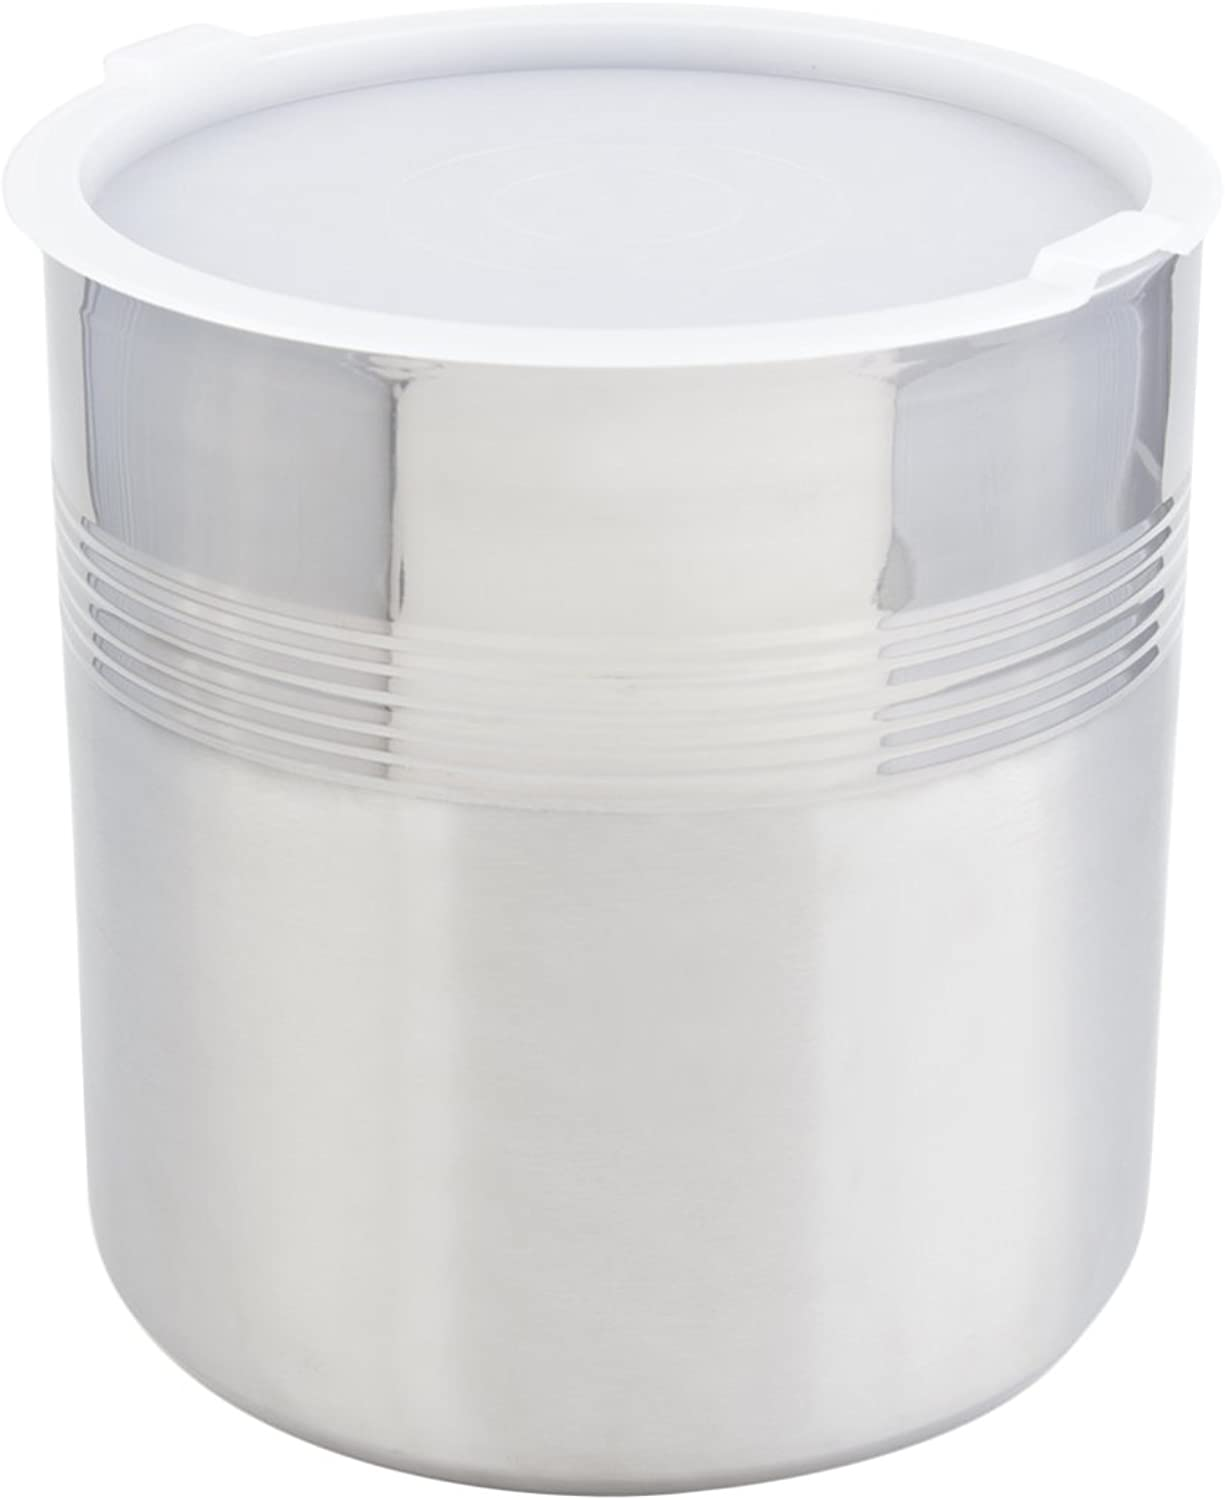 Bon Chef 9321 Stainless Steel 3 Wall Cold Wave Ice Cream Container with Cover, 3 gal Capacity, 10-1 2  Diameter x 11-1 2  Height